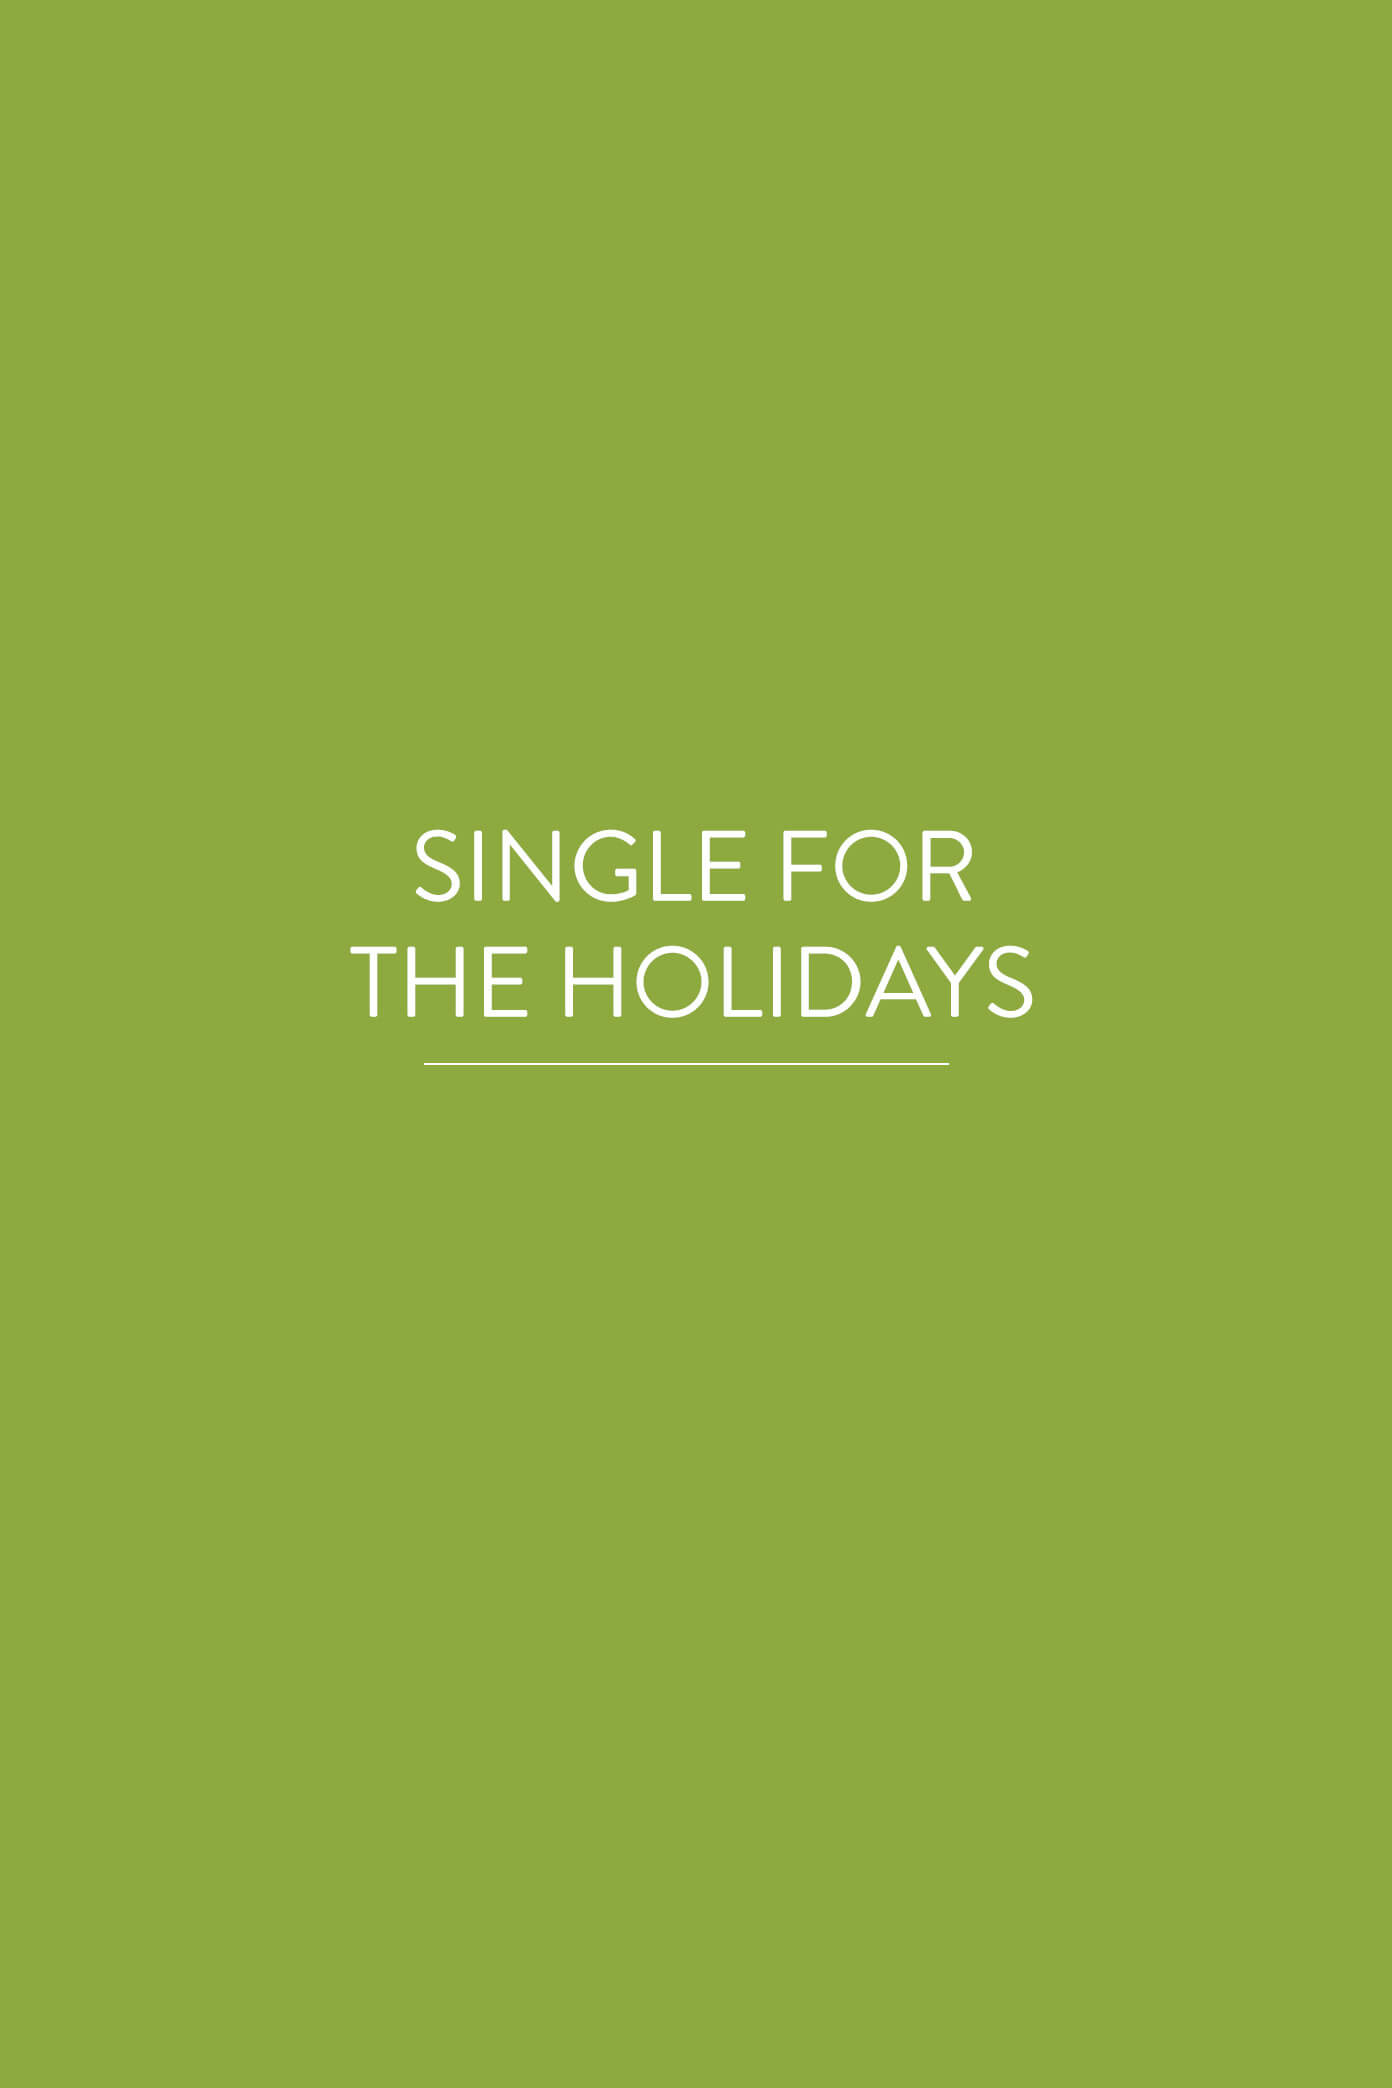 Dating holidays for singles